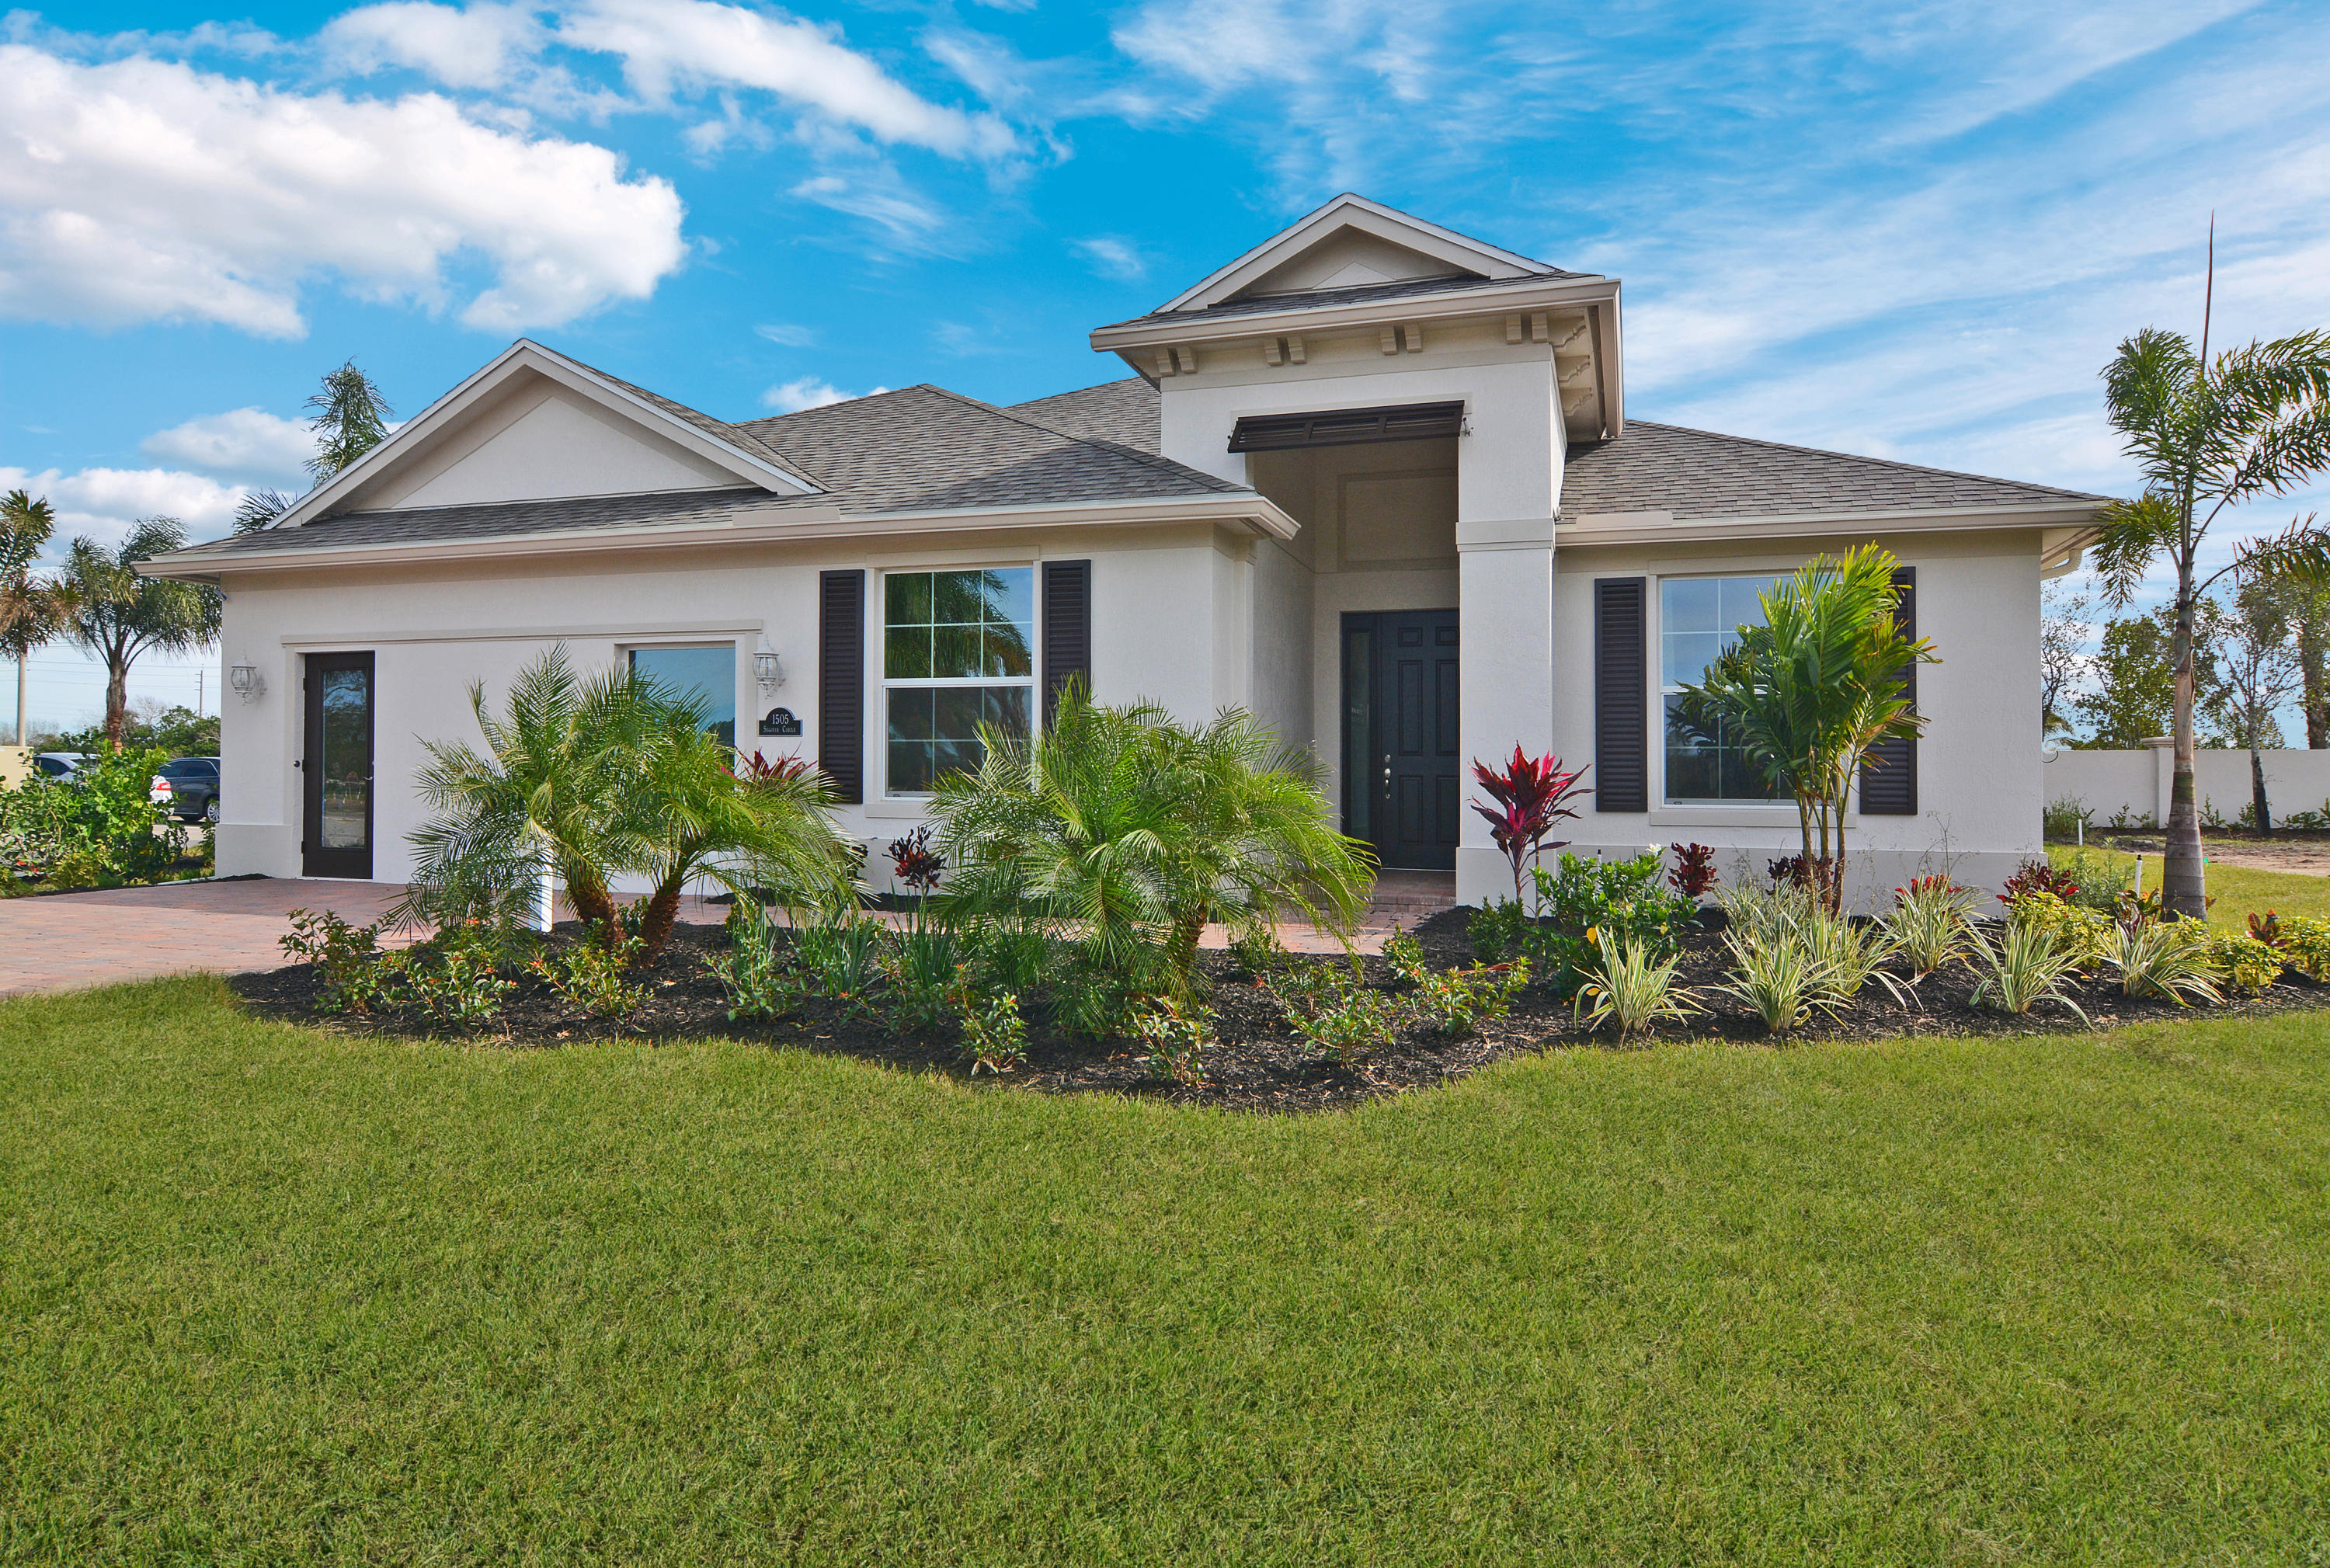 Photo of 5859 Segovia Place, Vero Beach, FL 32966